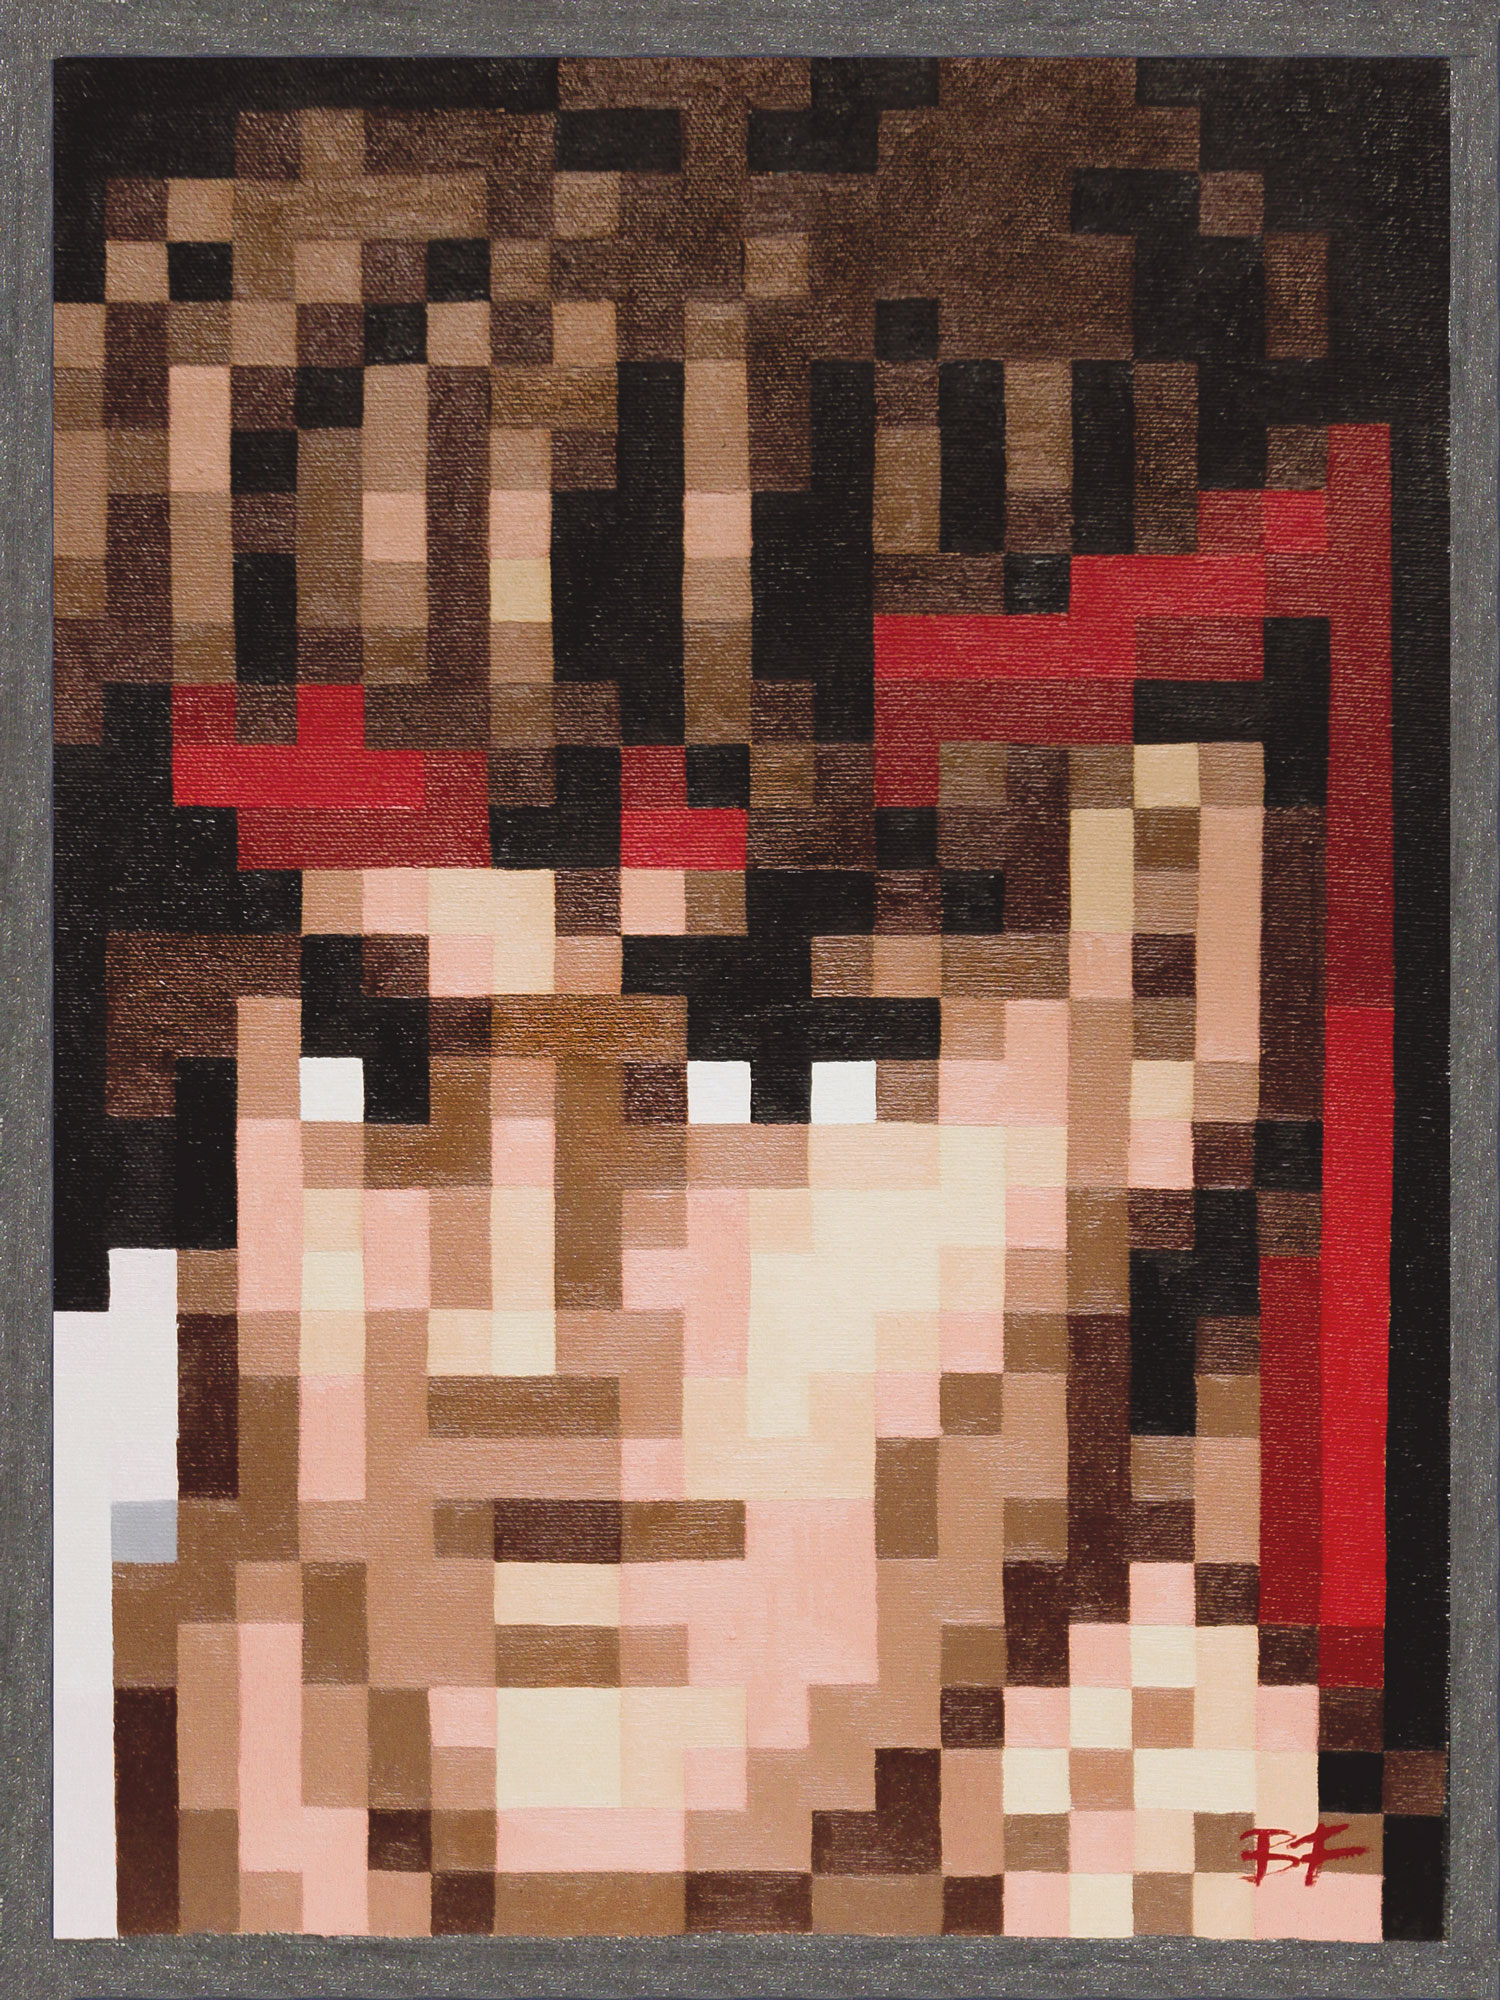 Ryu Pixel Perfect Portrait